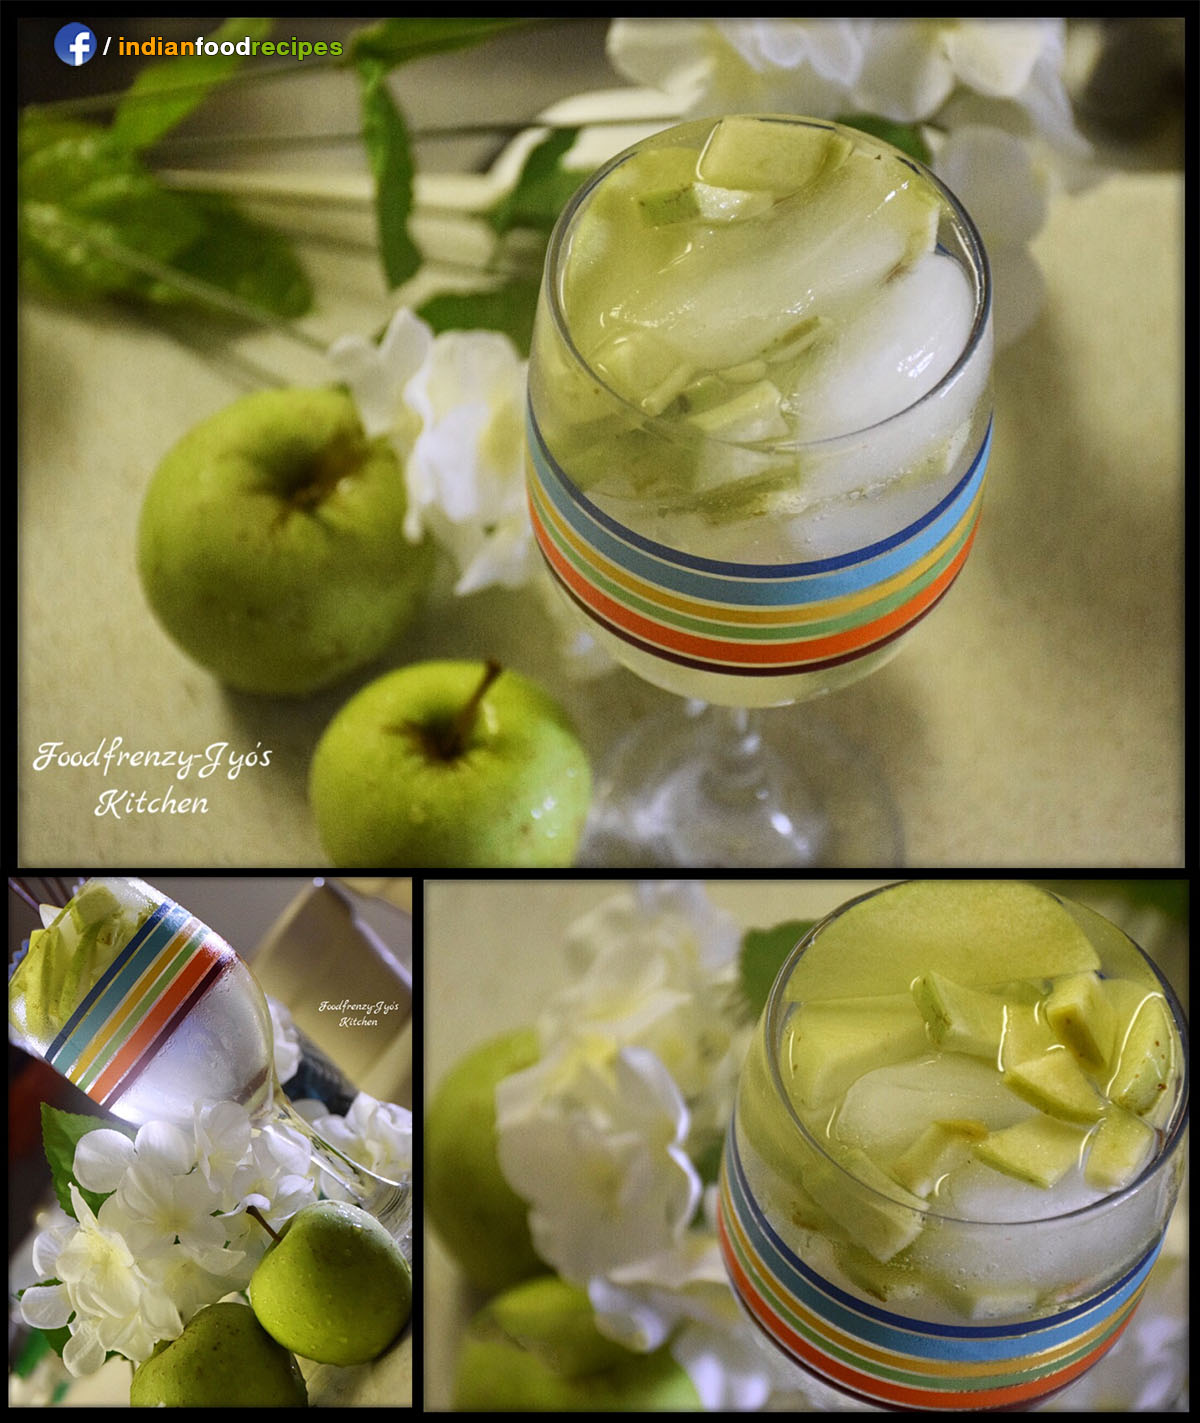 Green Apple Detox Drink recipe step by step